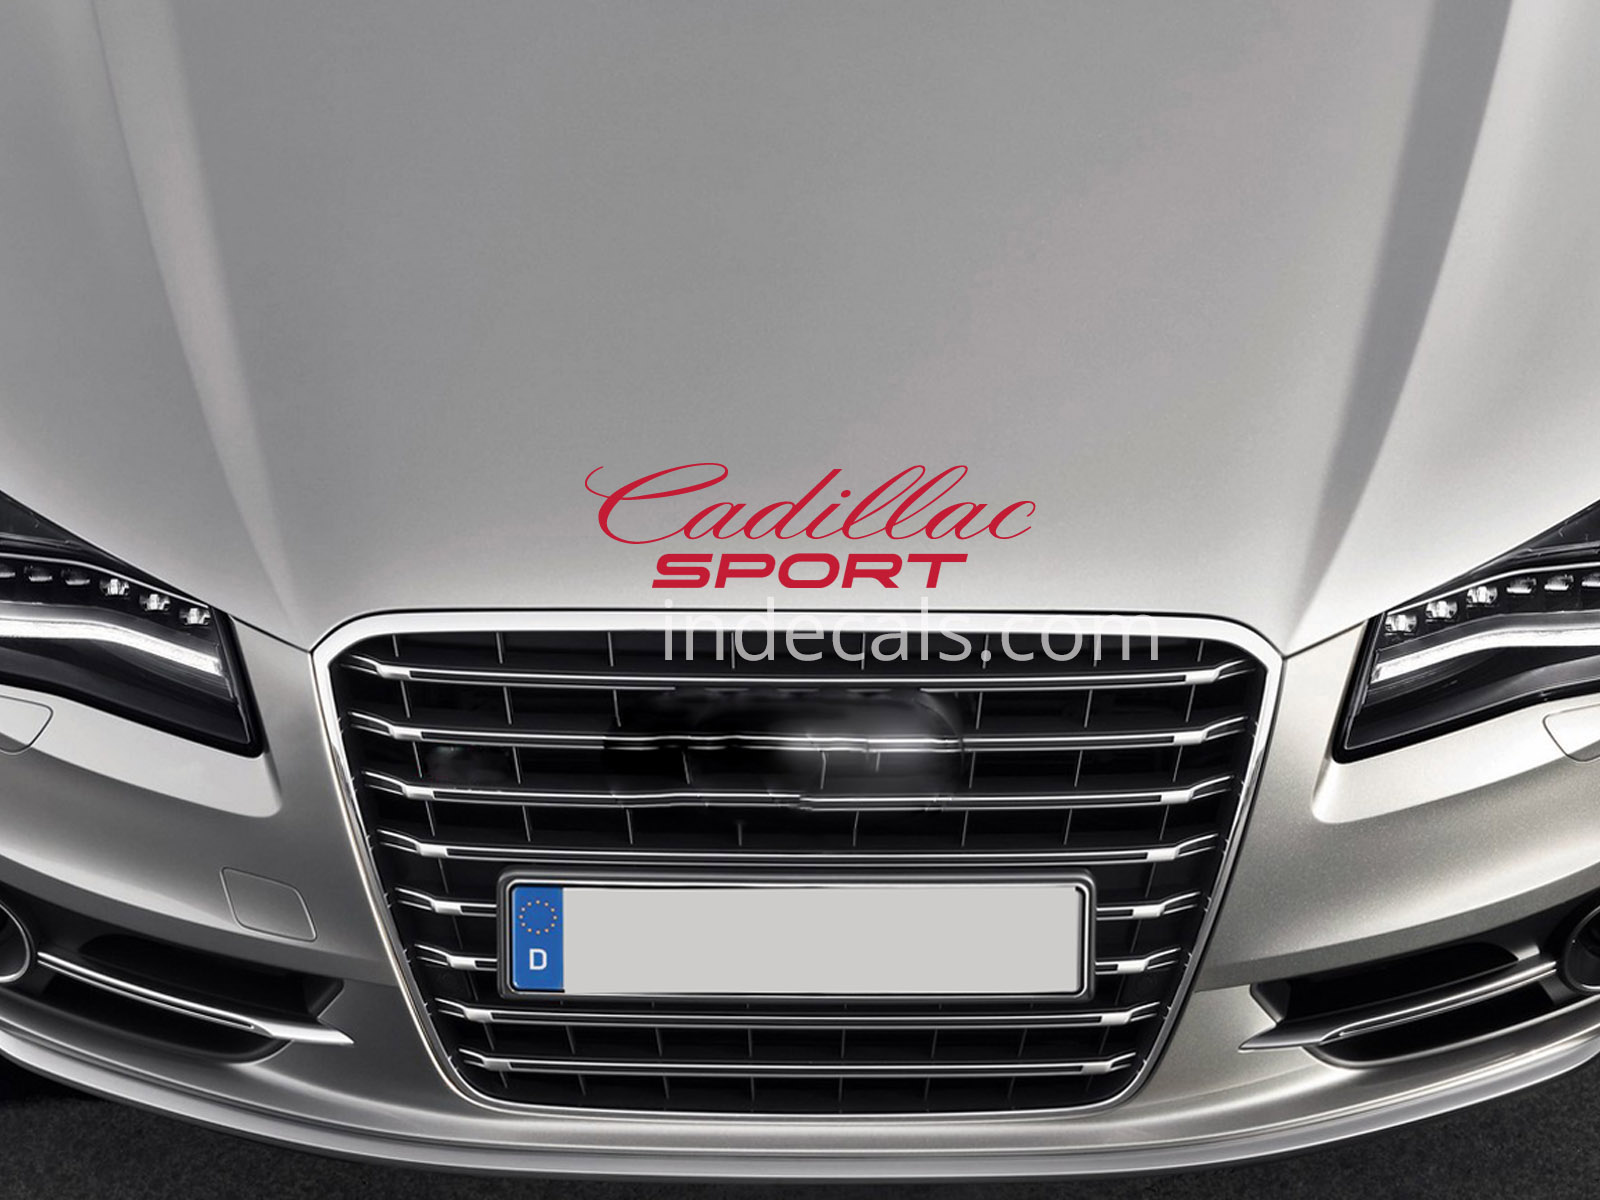 1 x Cadillac Sport Sticker for Bonnet - Red